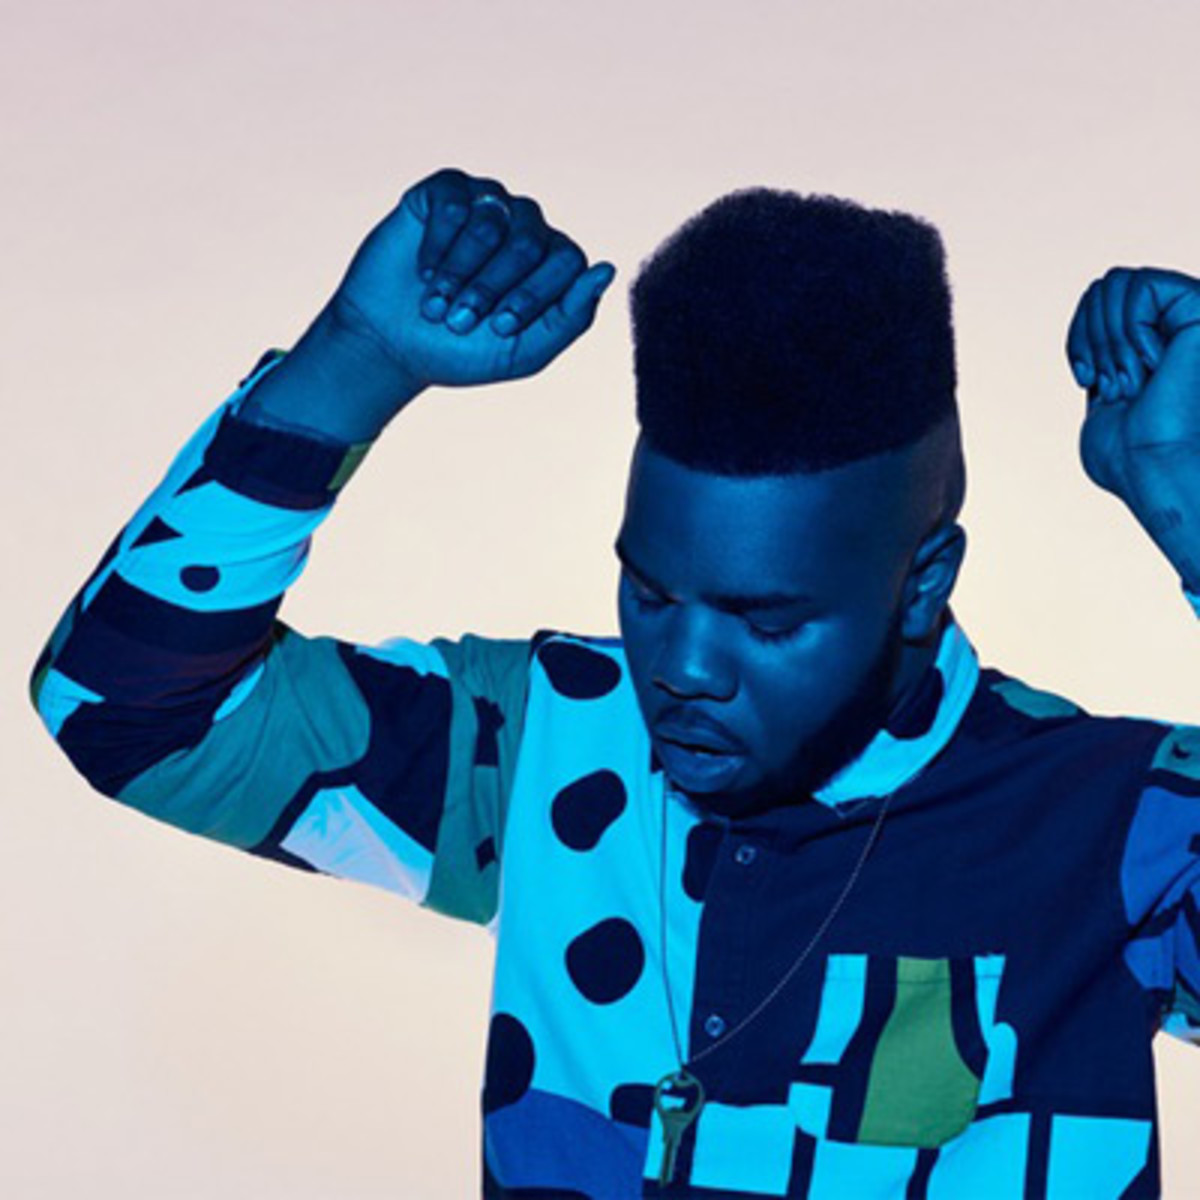 mnek-therhythm.jpg